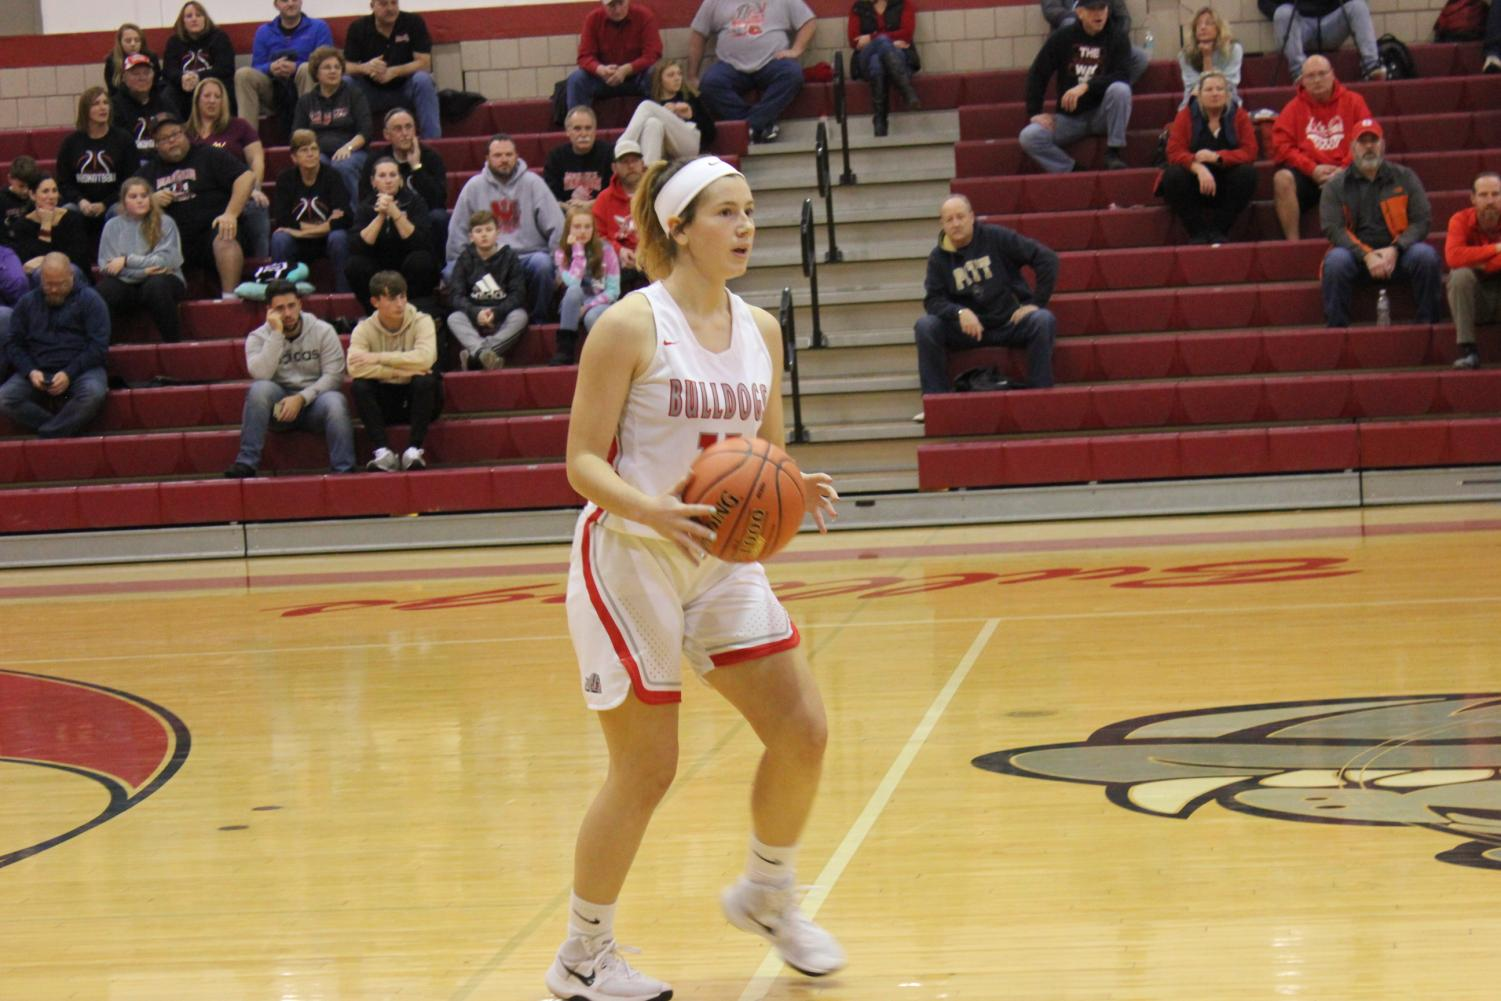 Sophomore Renae Morhbacher plans on how she will attack the Mohawk Warriors defense during a close match on Jan. 14